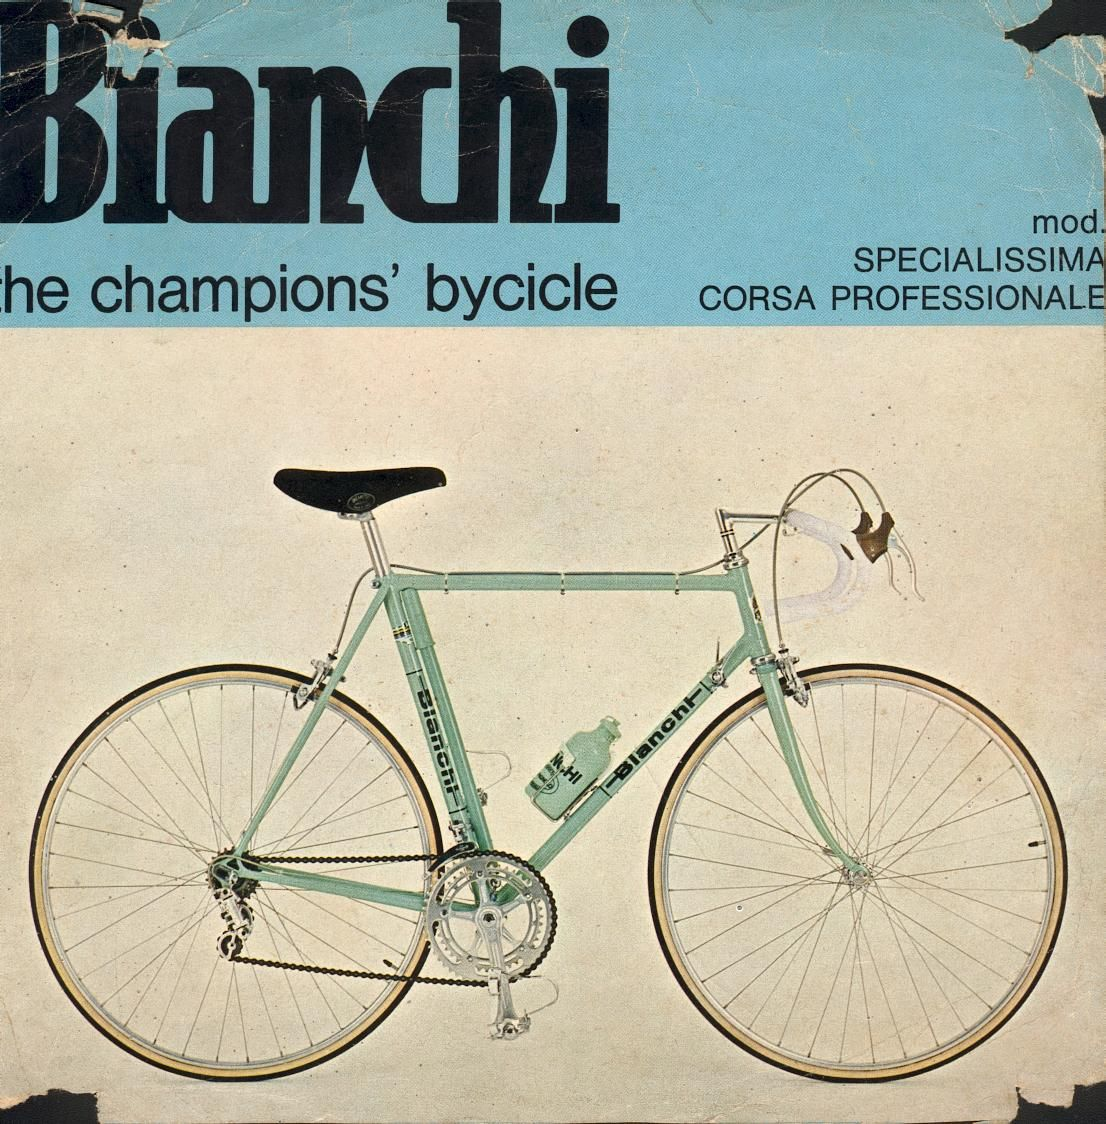 Classicvintagecycling Bianchi Bicycle Road Bike Vintage Bicycle